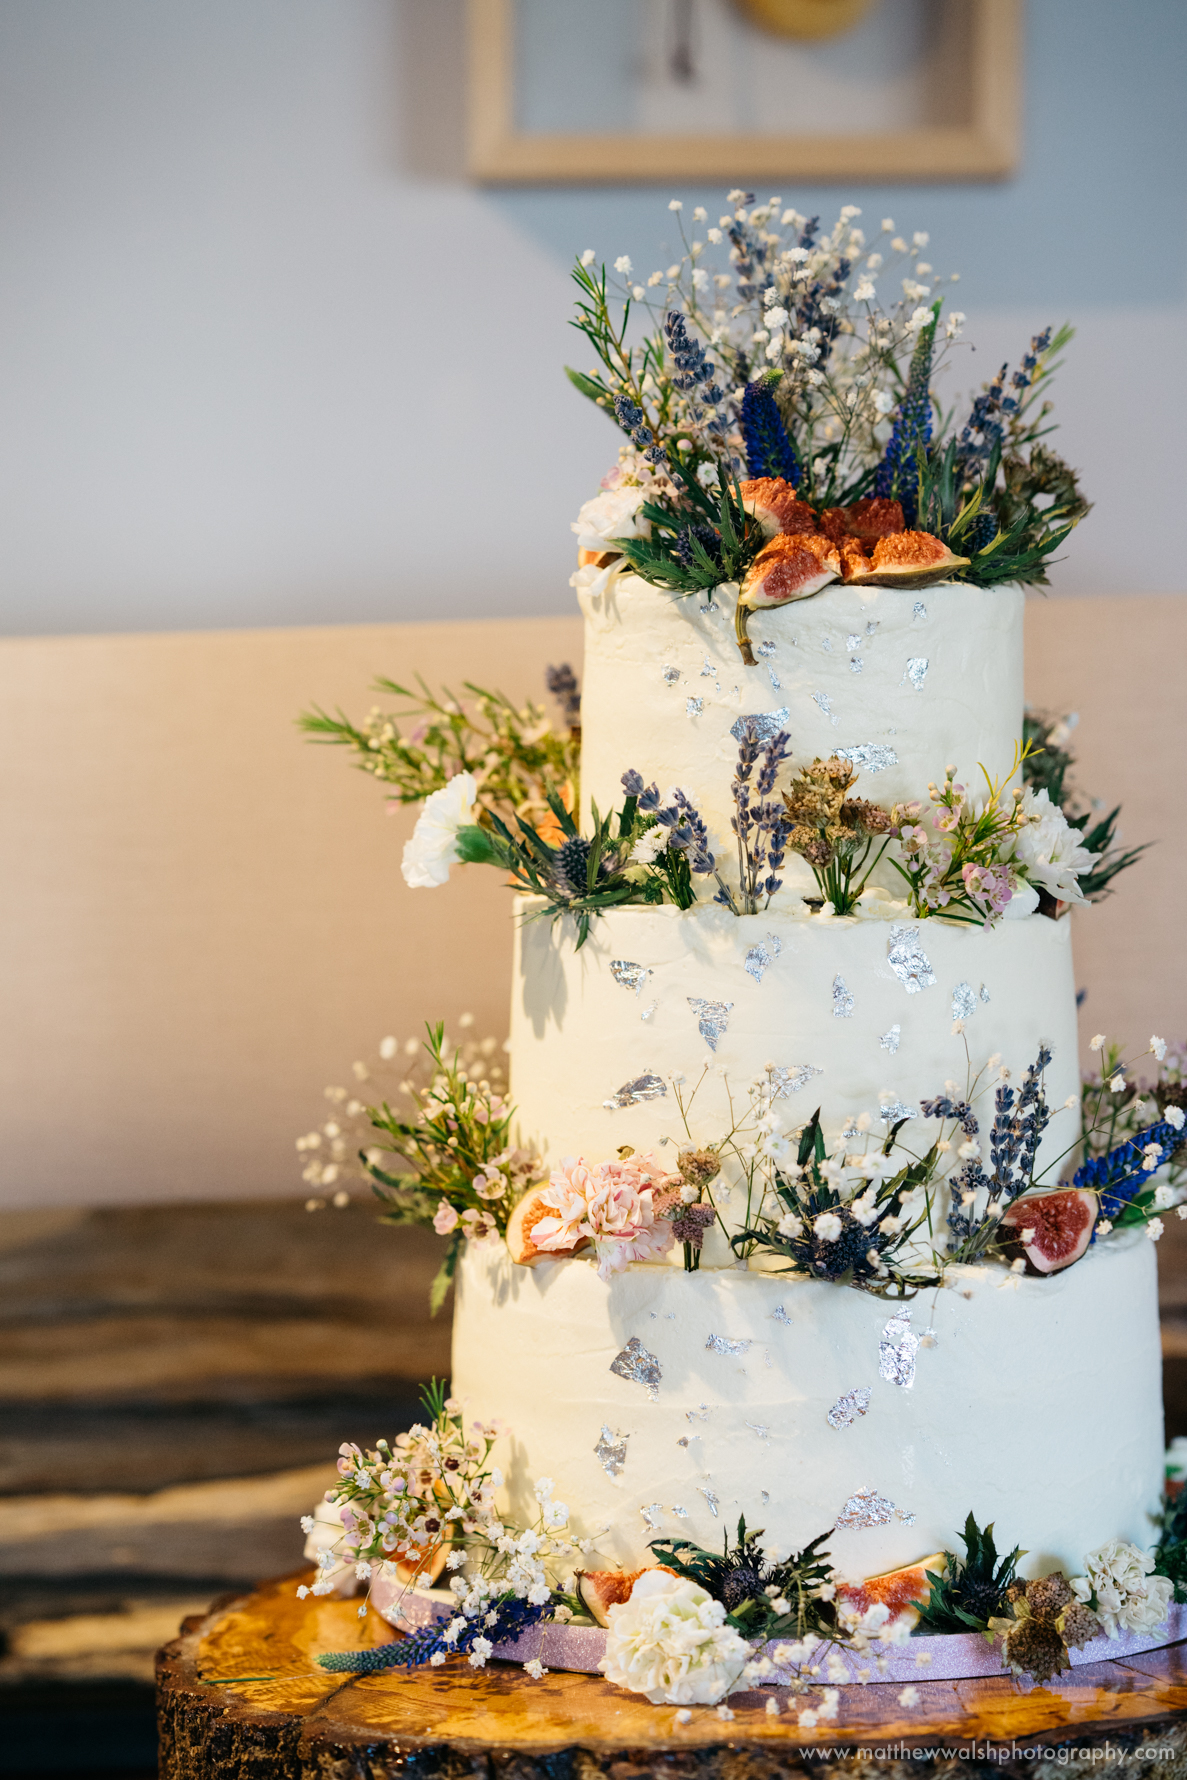 The wonderful wedding cake